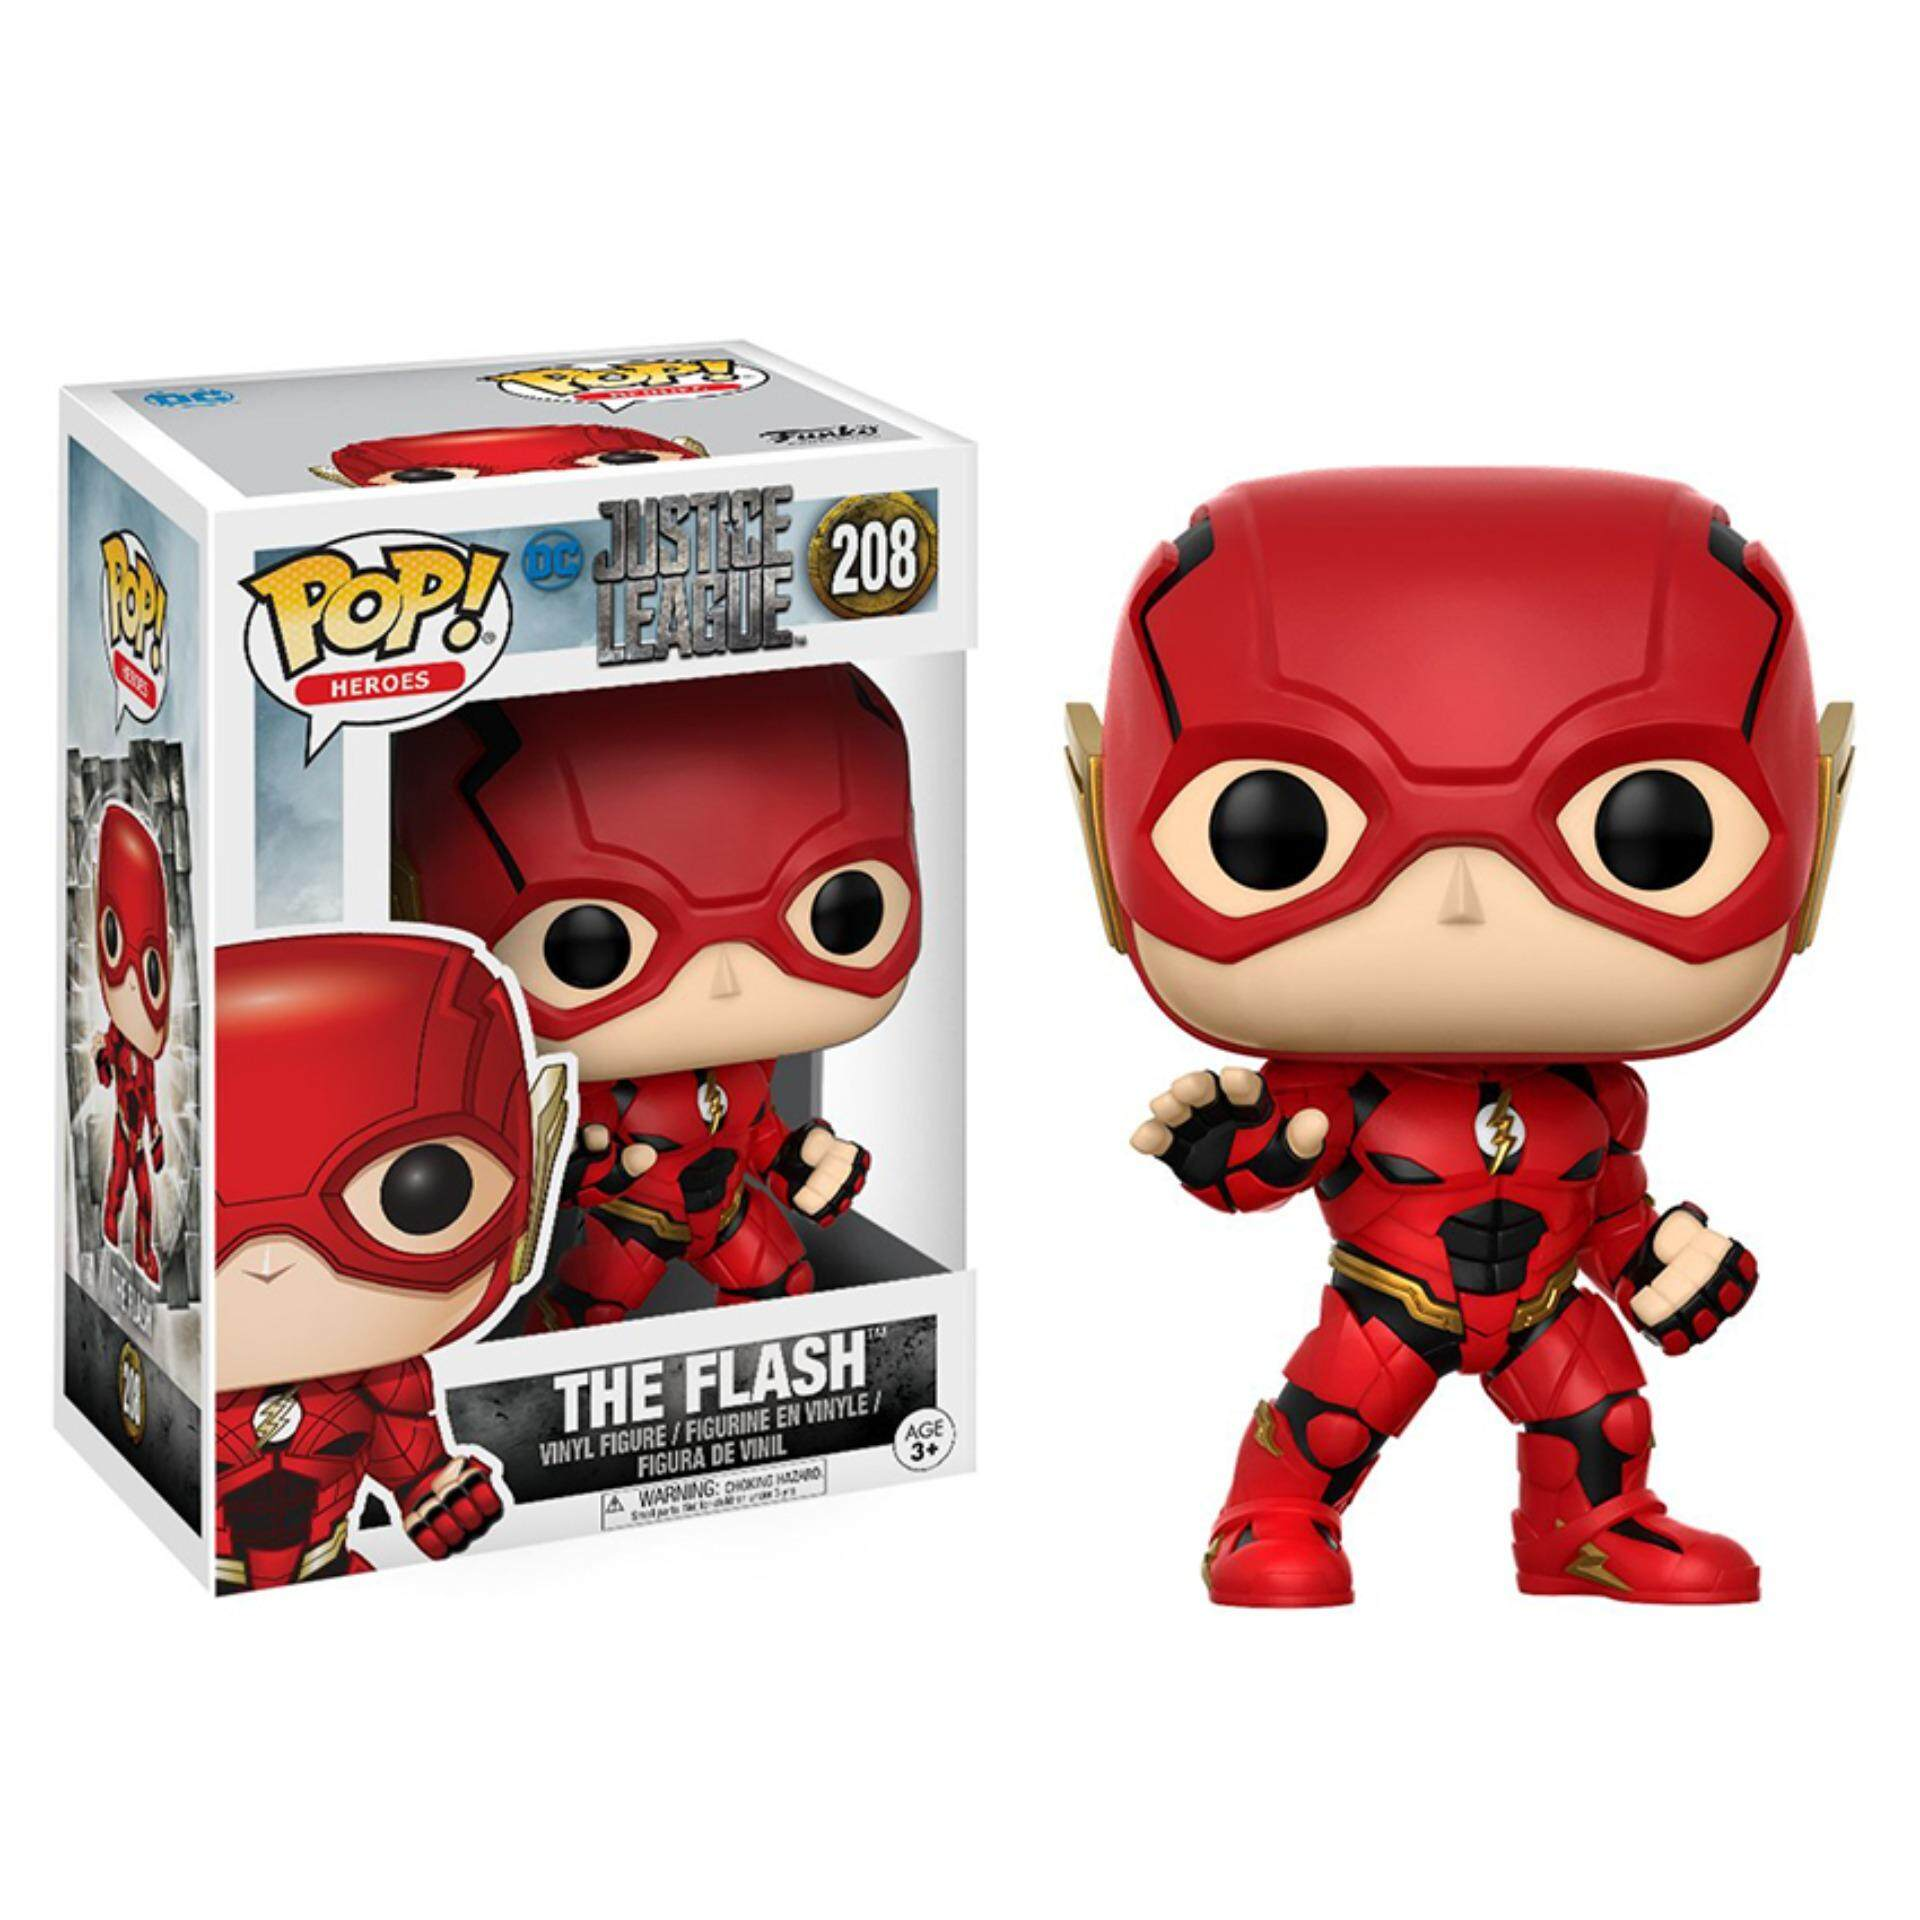 FUNKO POP! DC Heroes Justice League - The Flash Toys for boys